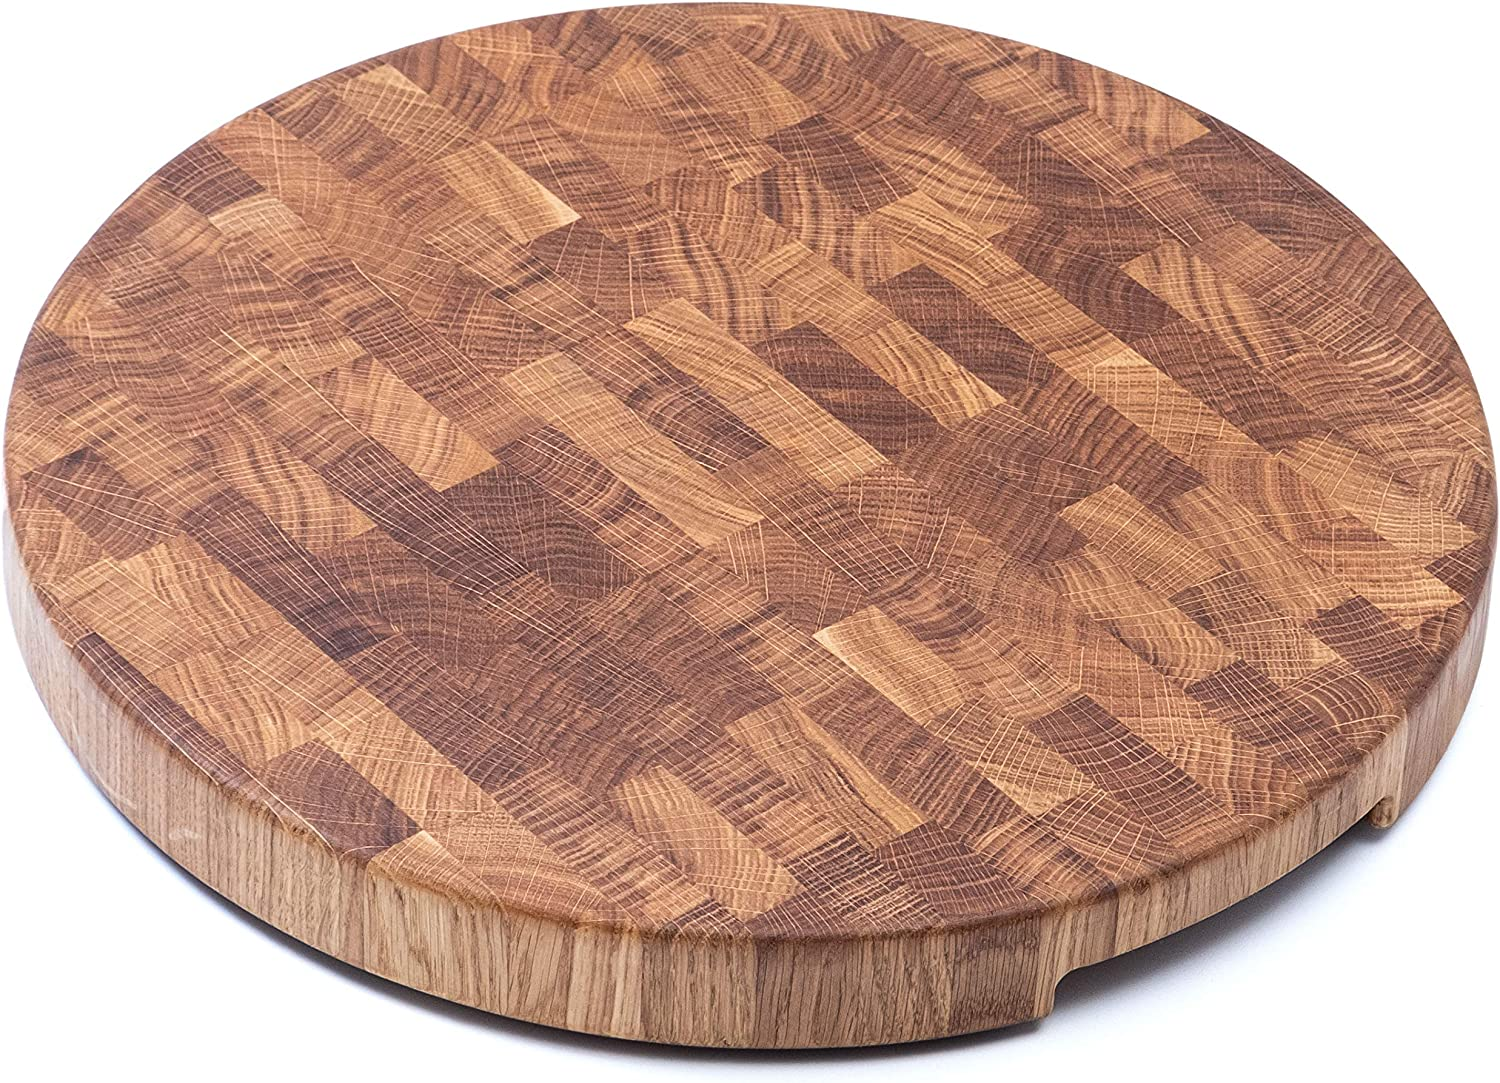 Daddy Chef Round End Grain Wood cutting board 20 x 2 inch - Extra Large - Kitchen Wooden Butcher Block - Chopping Board - Wooden Cheese Carving Board - Oak cutting board with feet (DT R20)